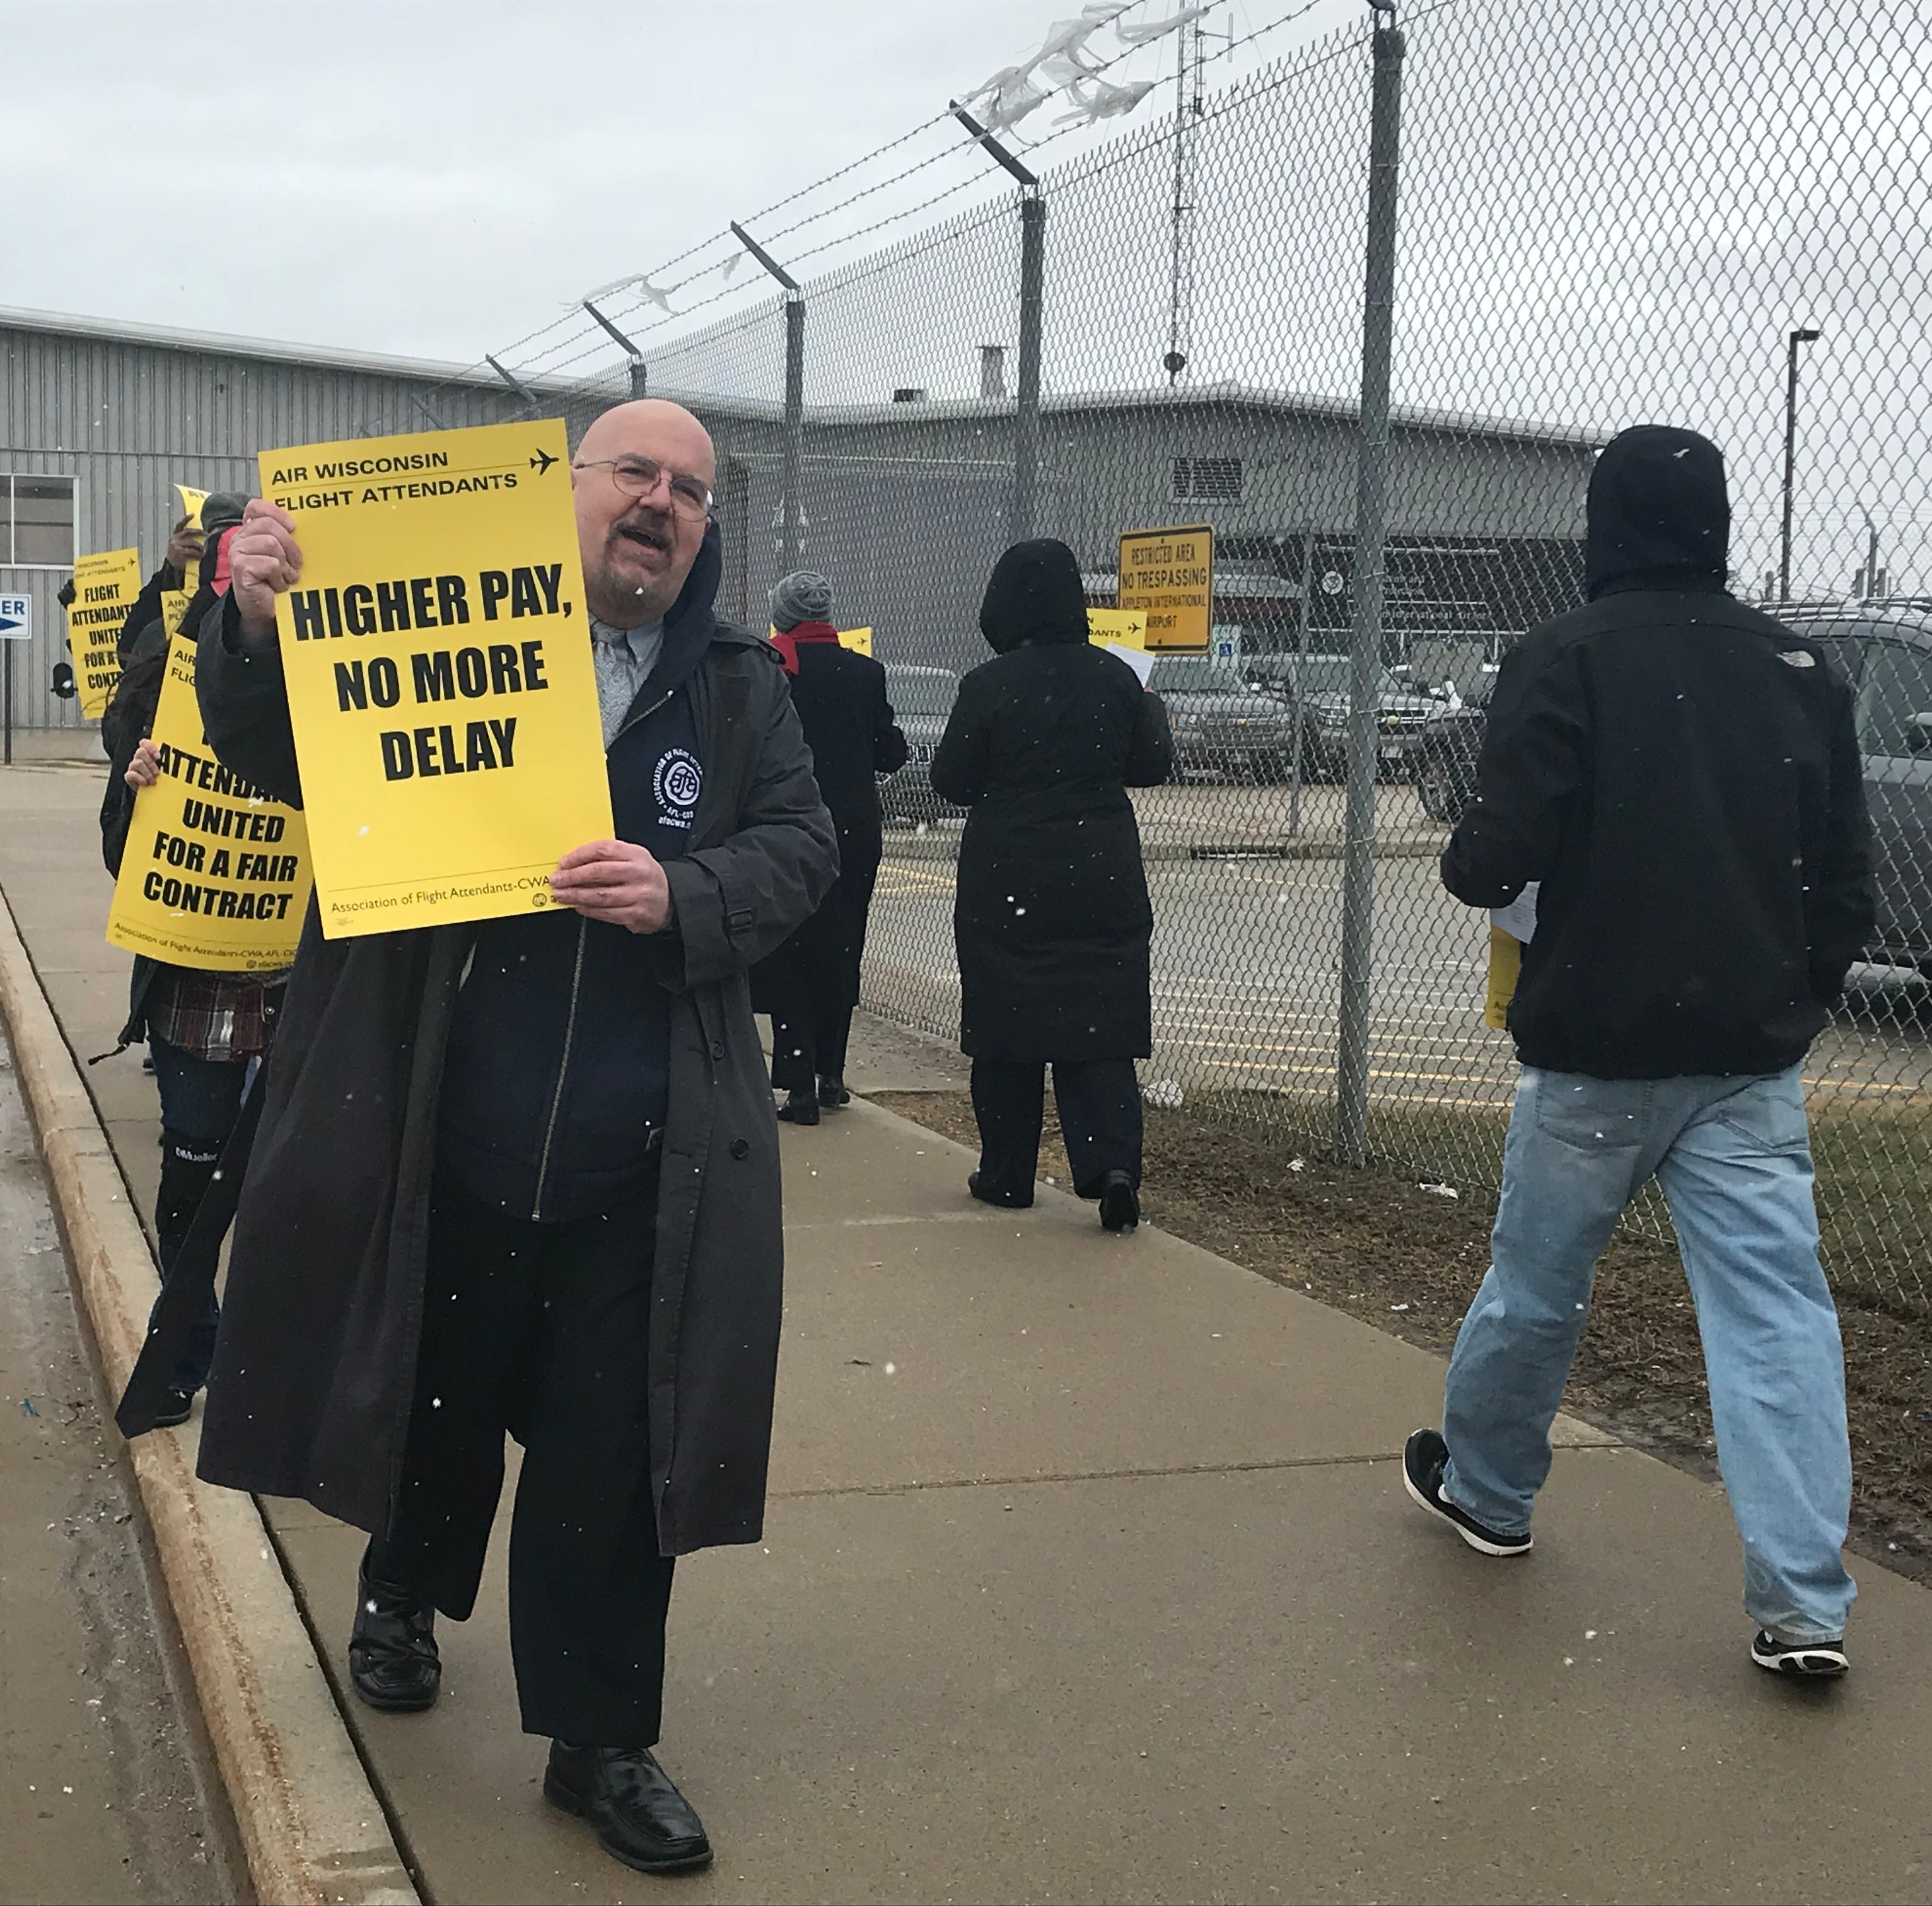 Air Wisconsin flight attendants seek higher wages in protest at Appleton International Airport facility